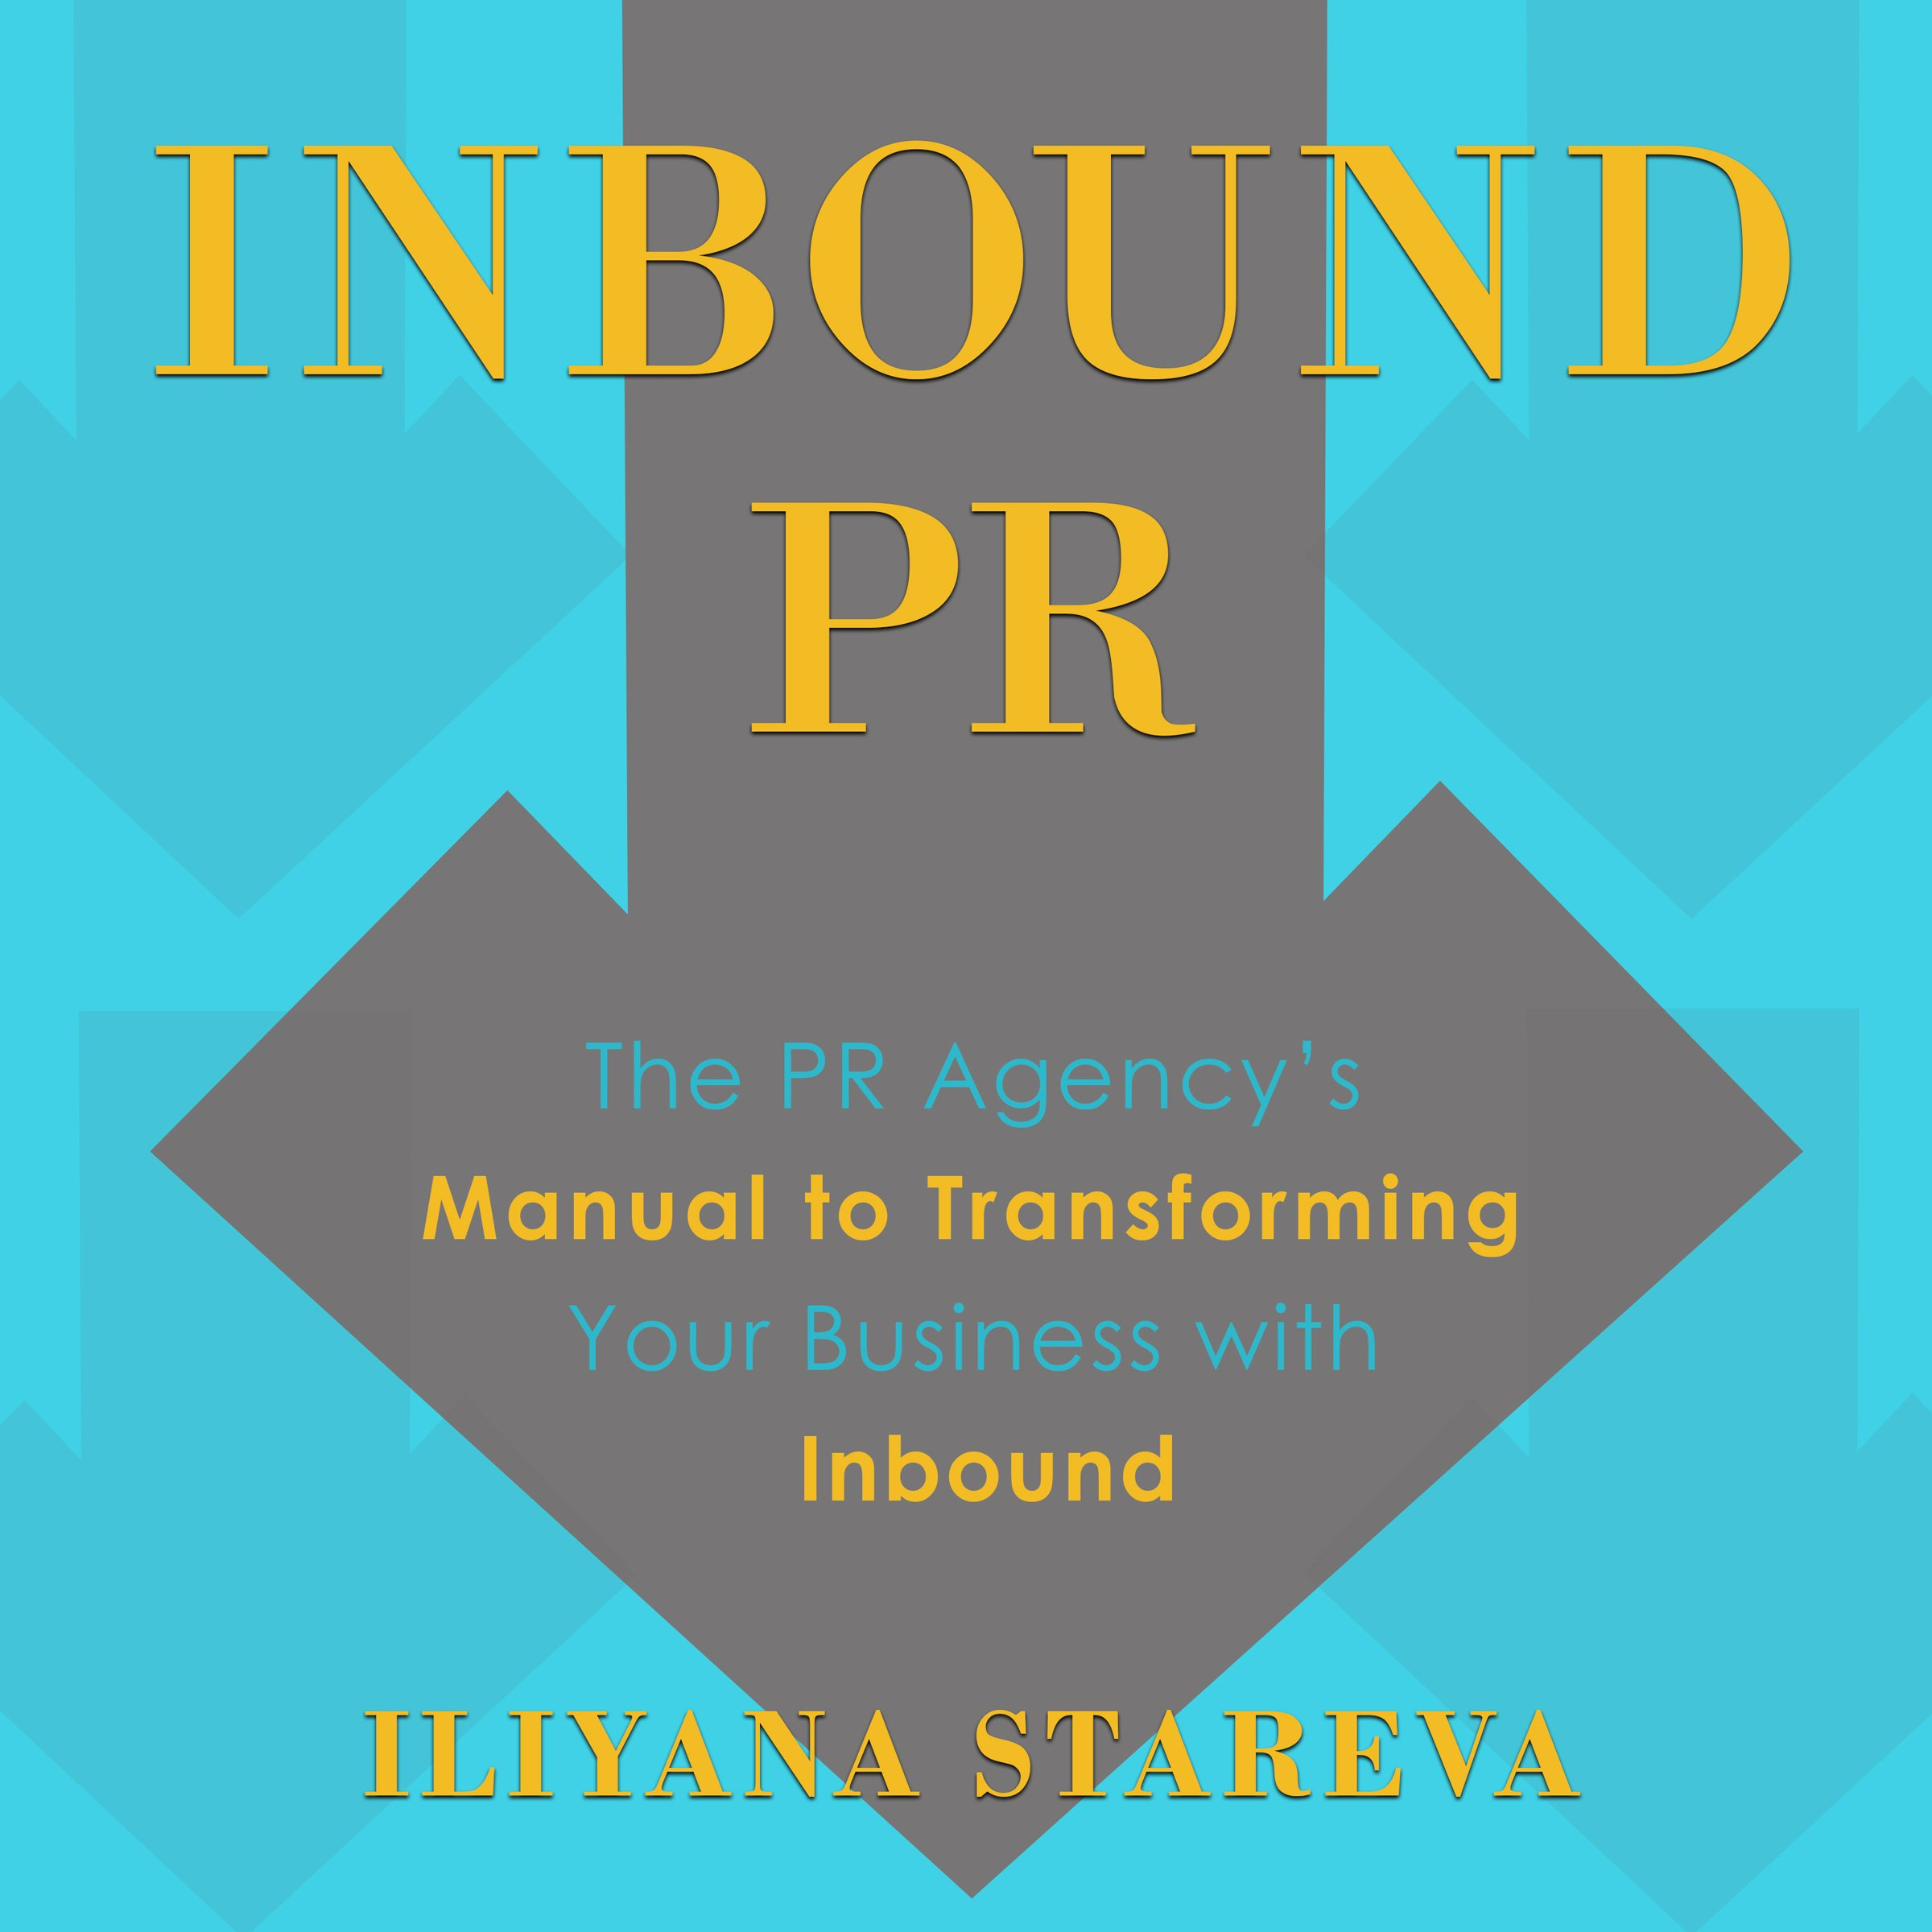 Inbound PR: The PR Agency's Manual to Transforming Your Business with Inbound